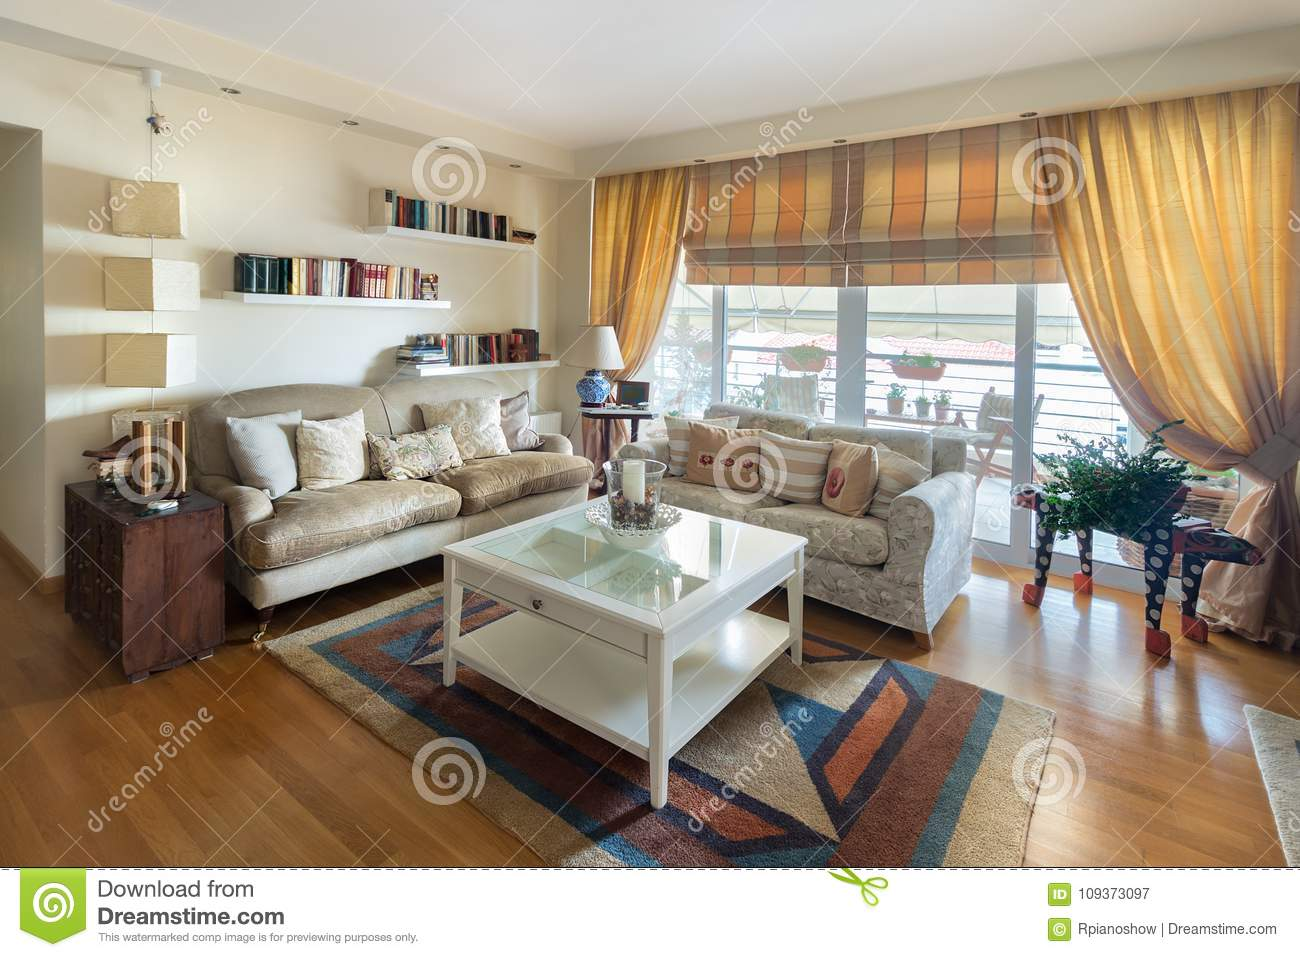 Outstanding Warm Contemporayy Style Living Room With Two Sofas On An Oak Dailytribune Chair Design For Home Dailytribuneorg